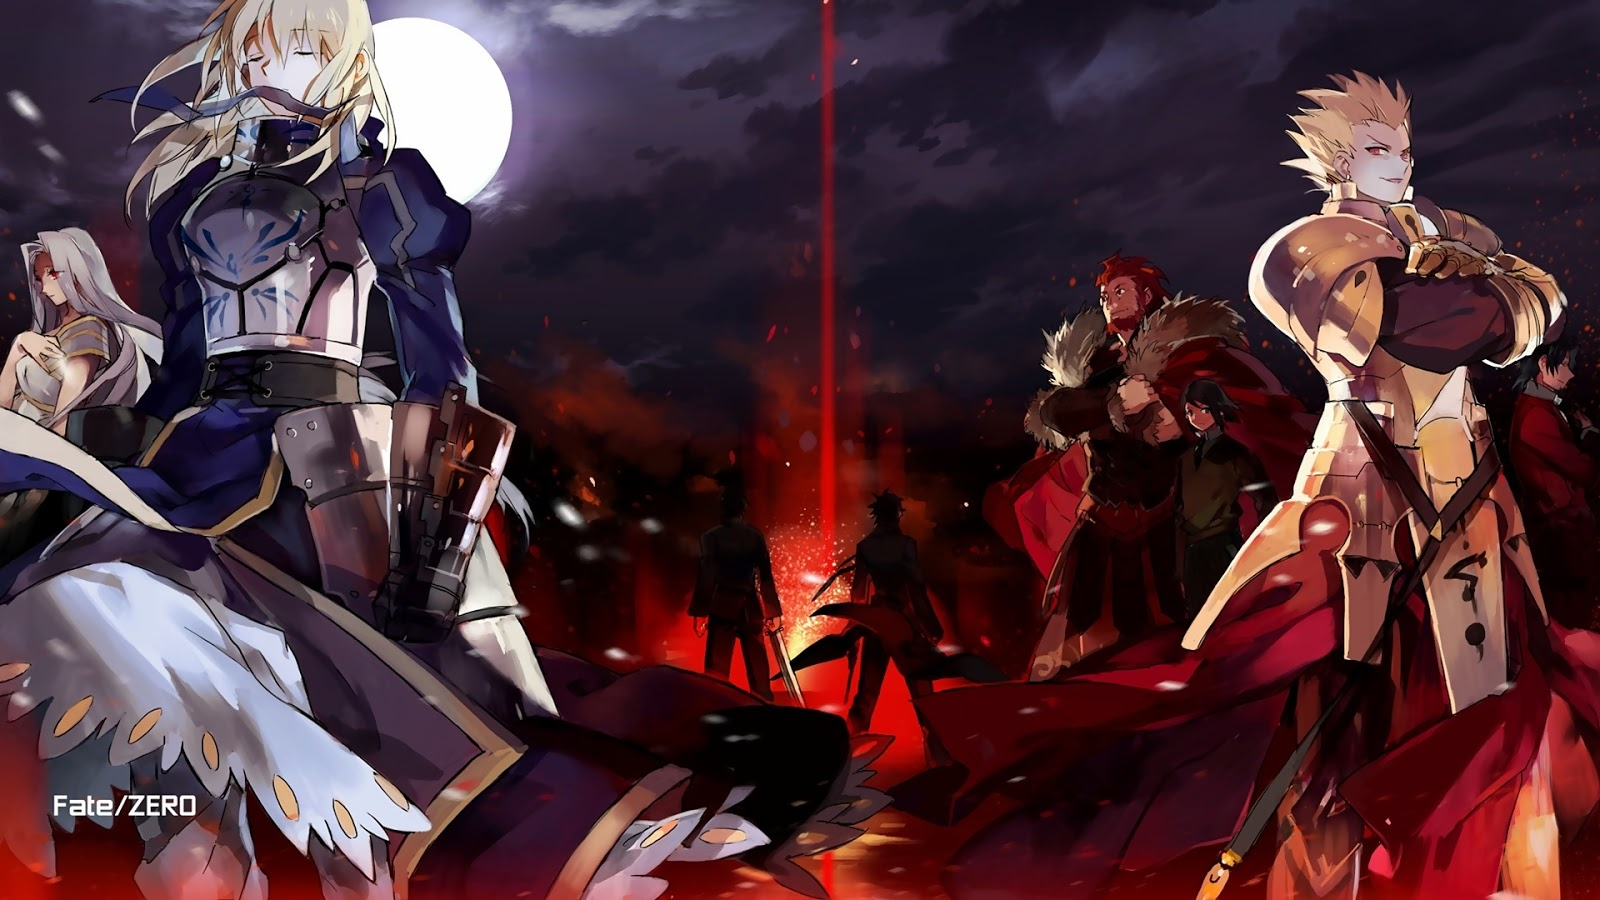 Fate/Zero BD (Season 1 & Season 2) Subtitle Indonesia